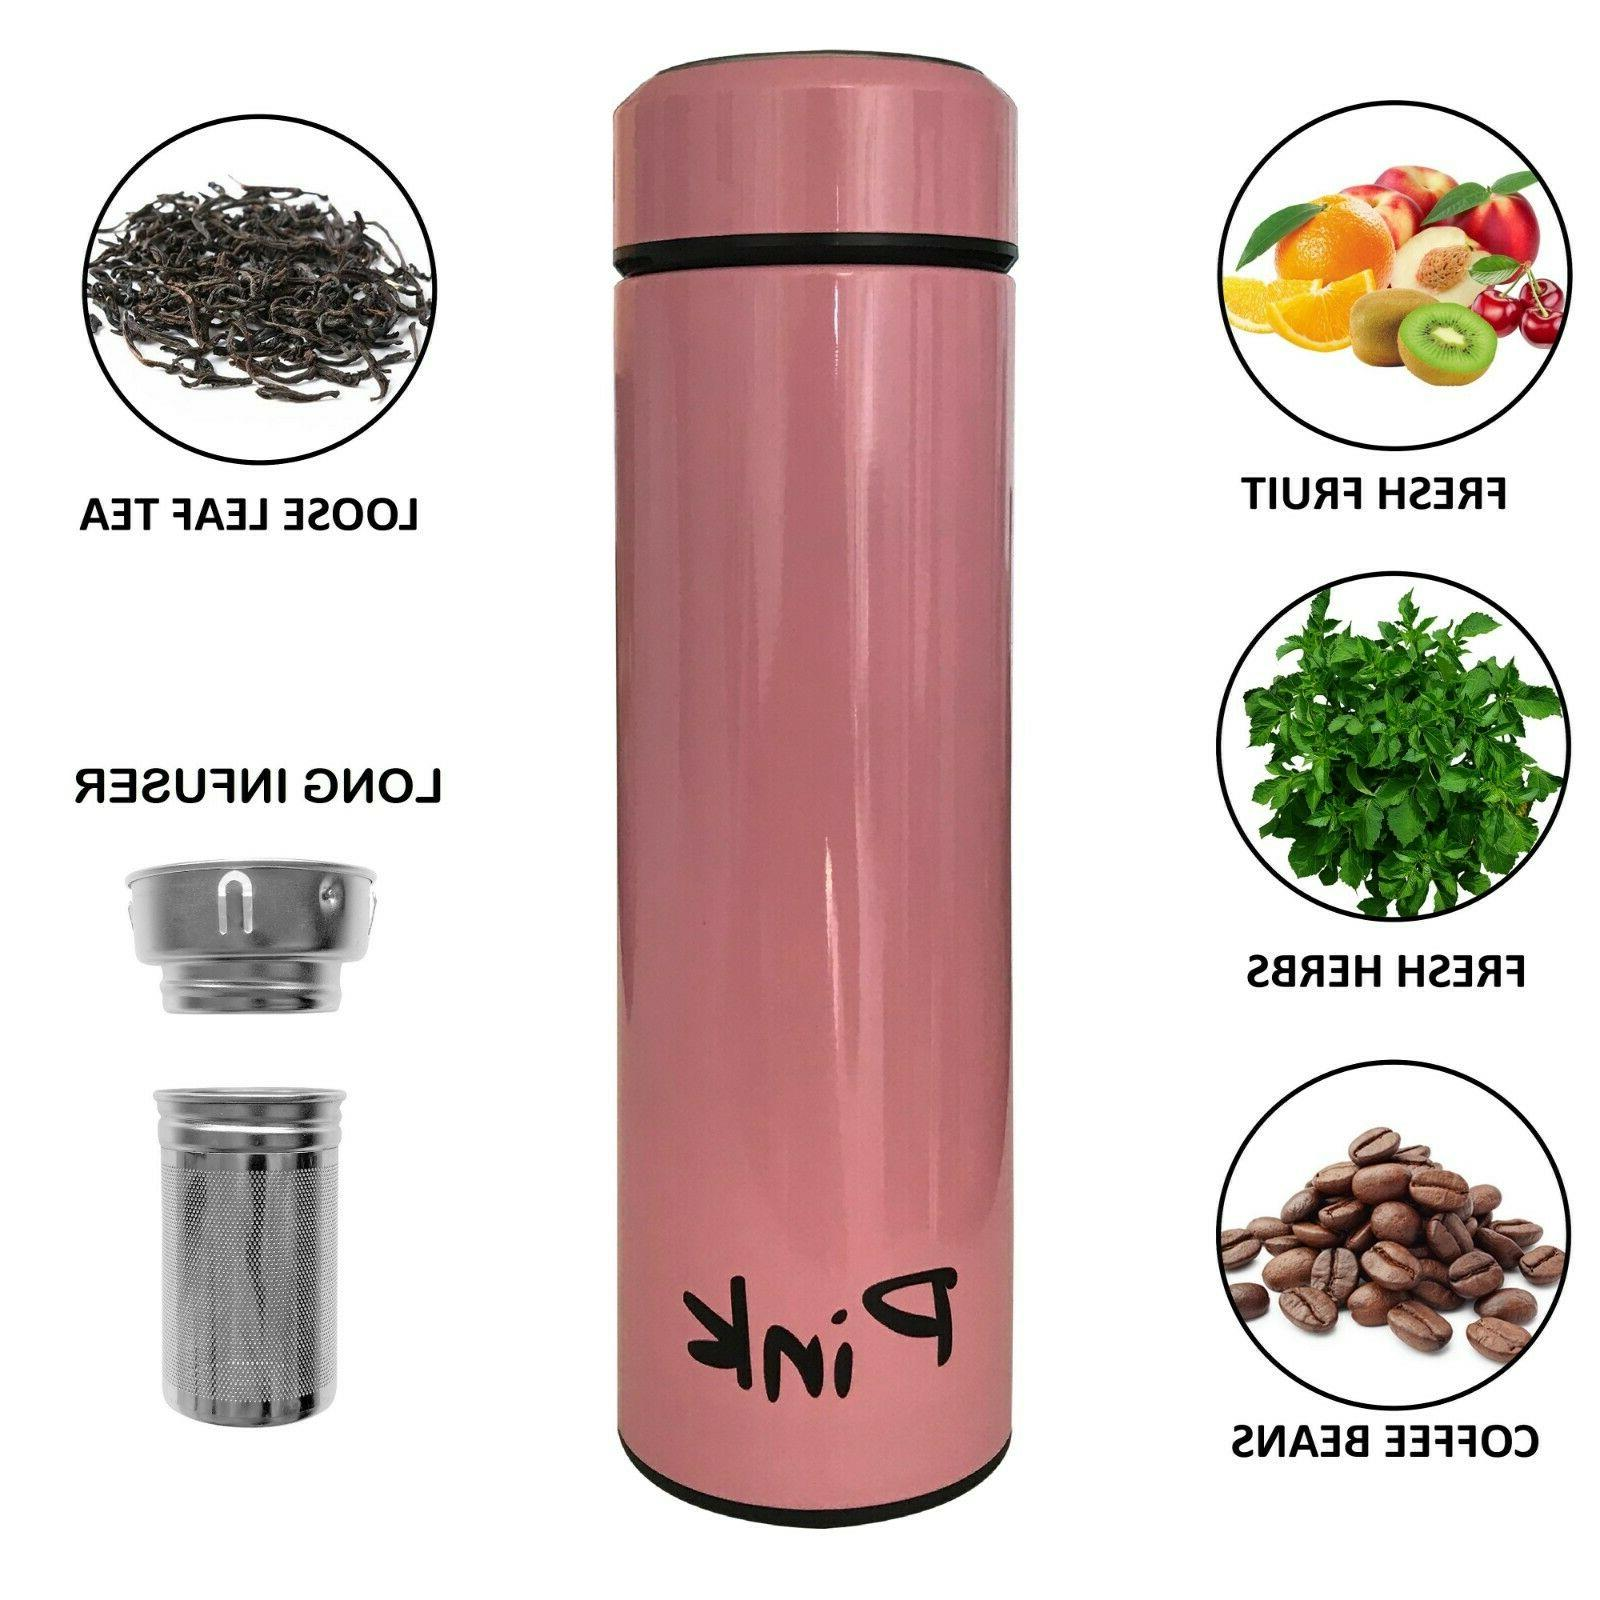 Coffee Thermos - Long Tea infuser Bottle - Insulated Travel